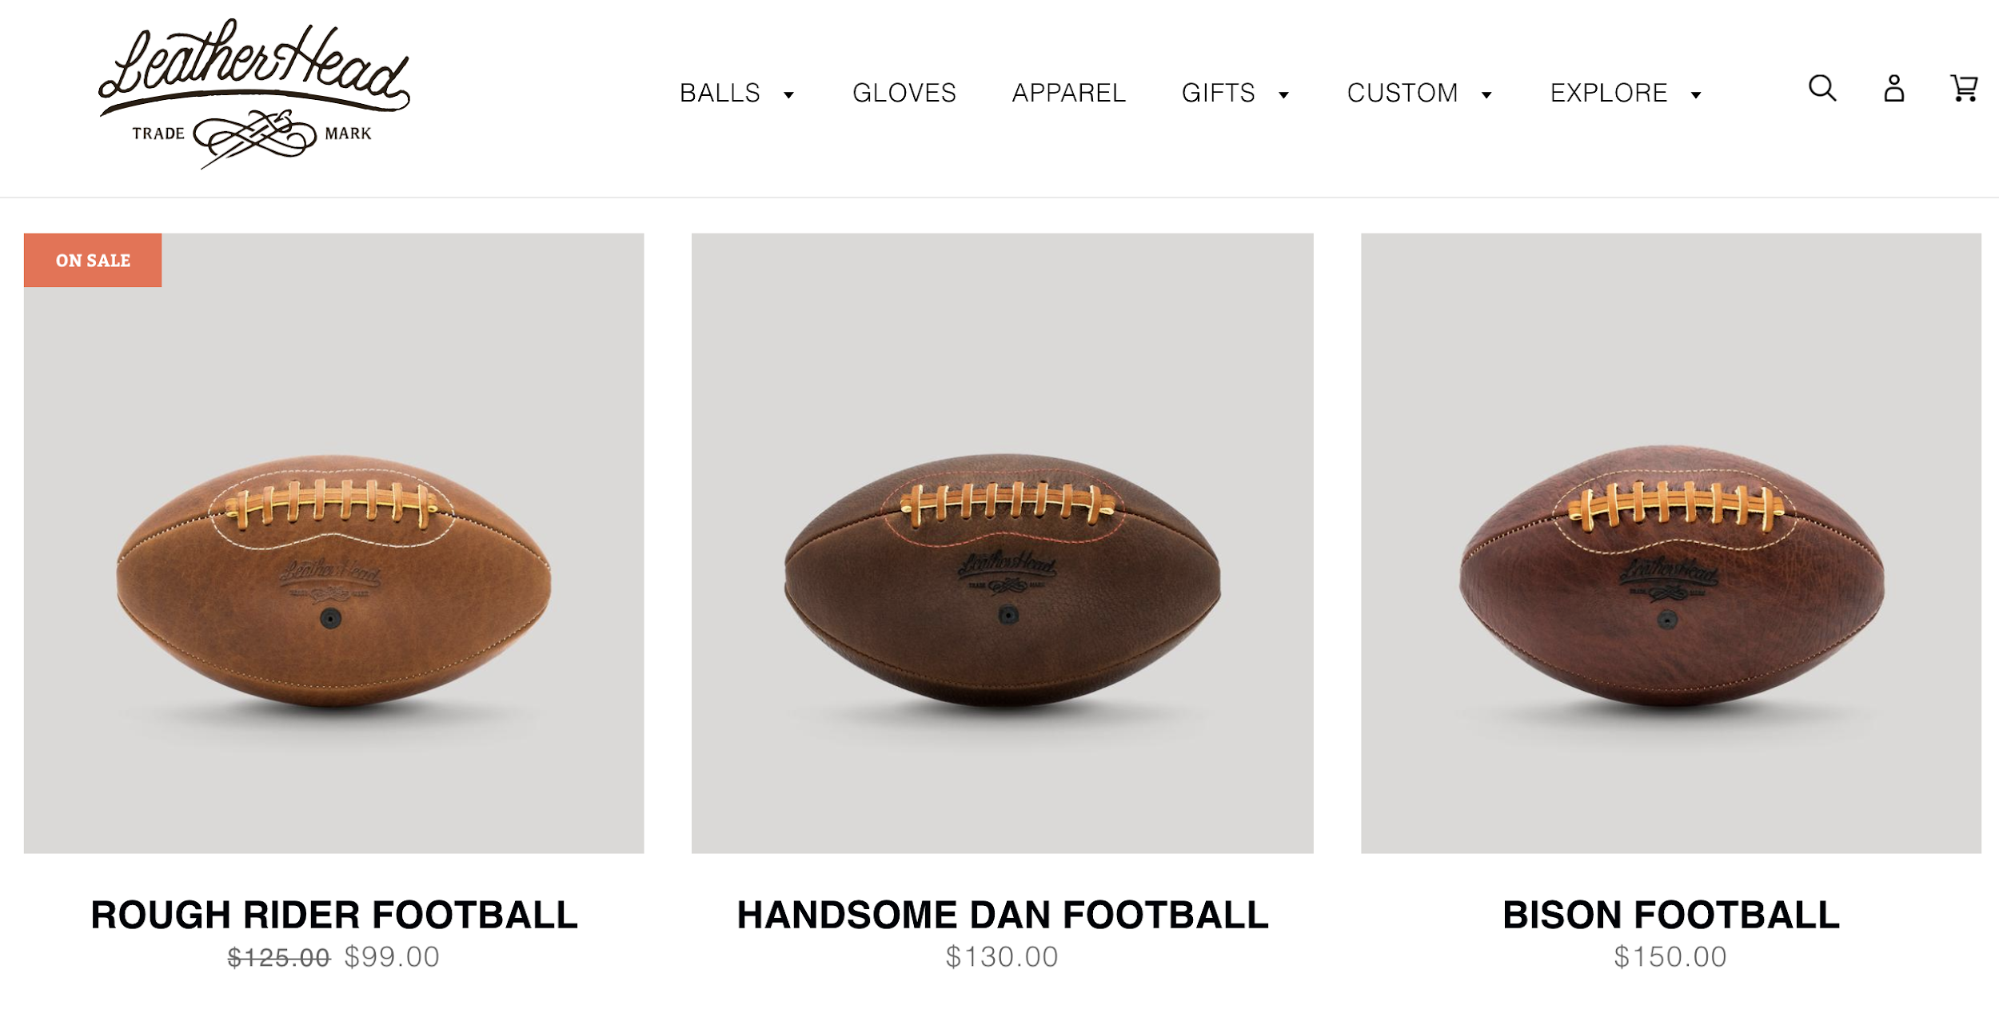 Screenshot showing a store that makes footballs